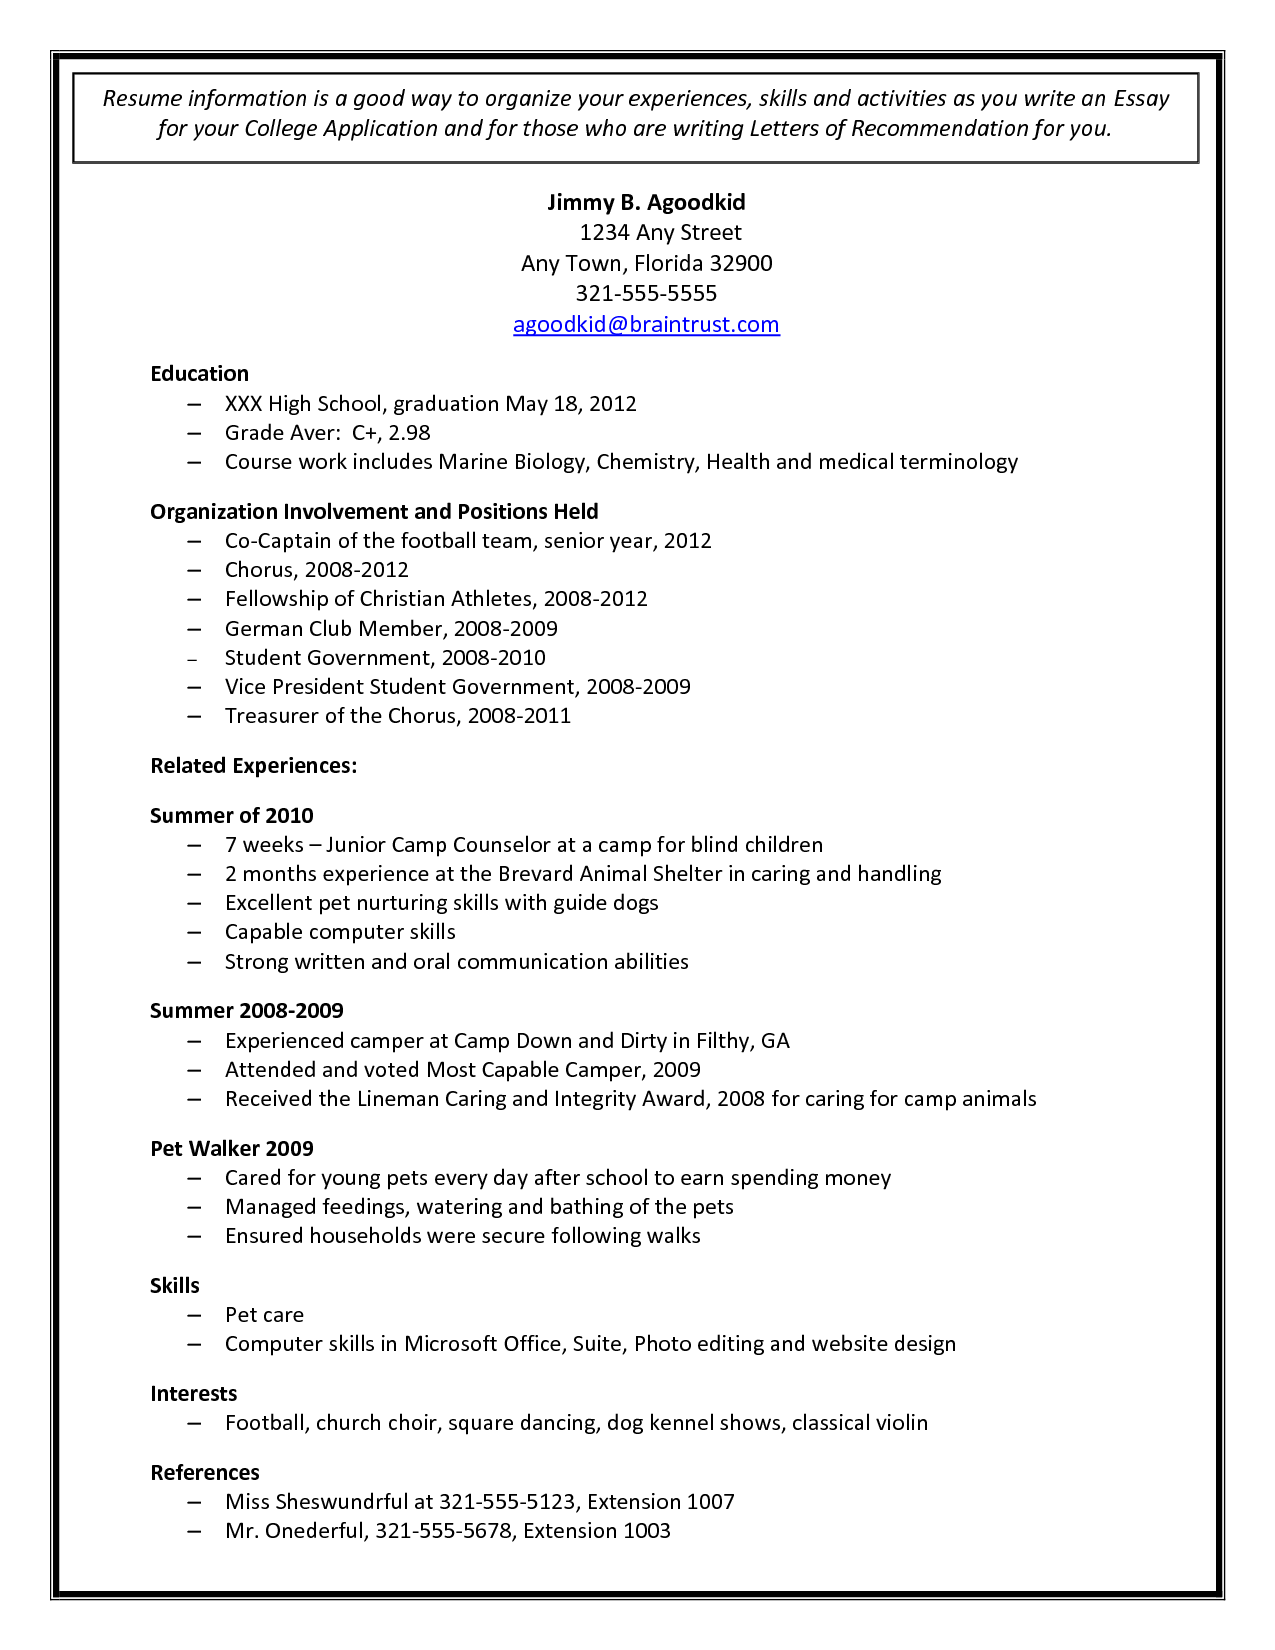 Resume Examples For College Applications College Admission Resume Template Document Sample